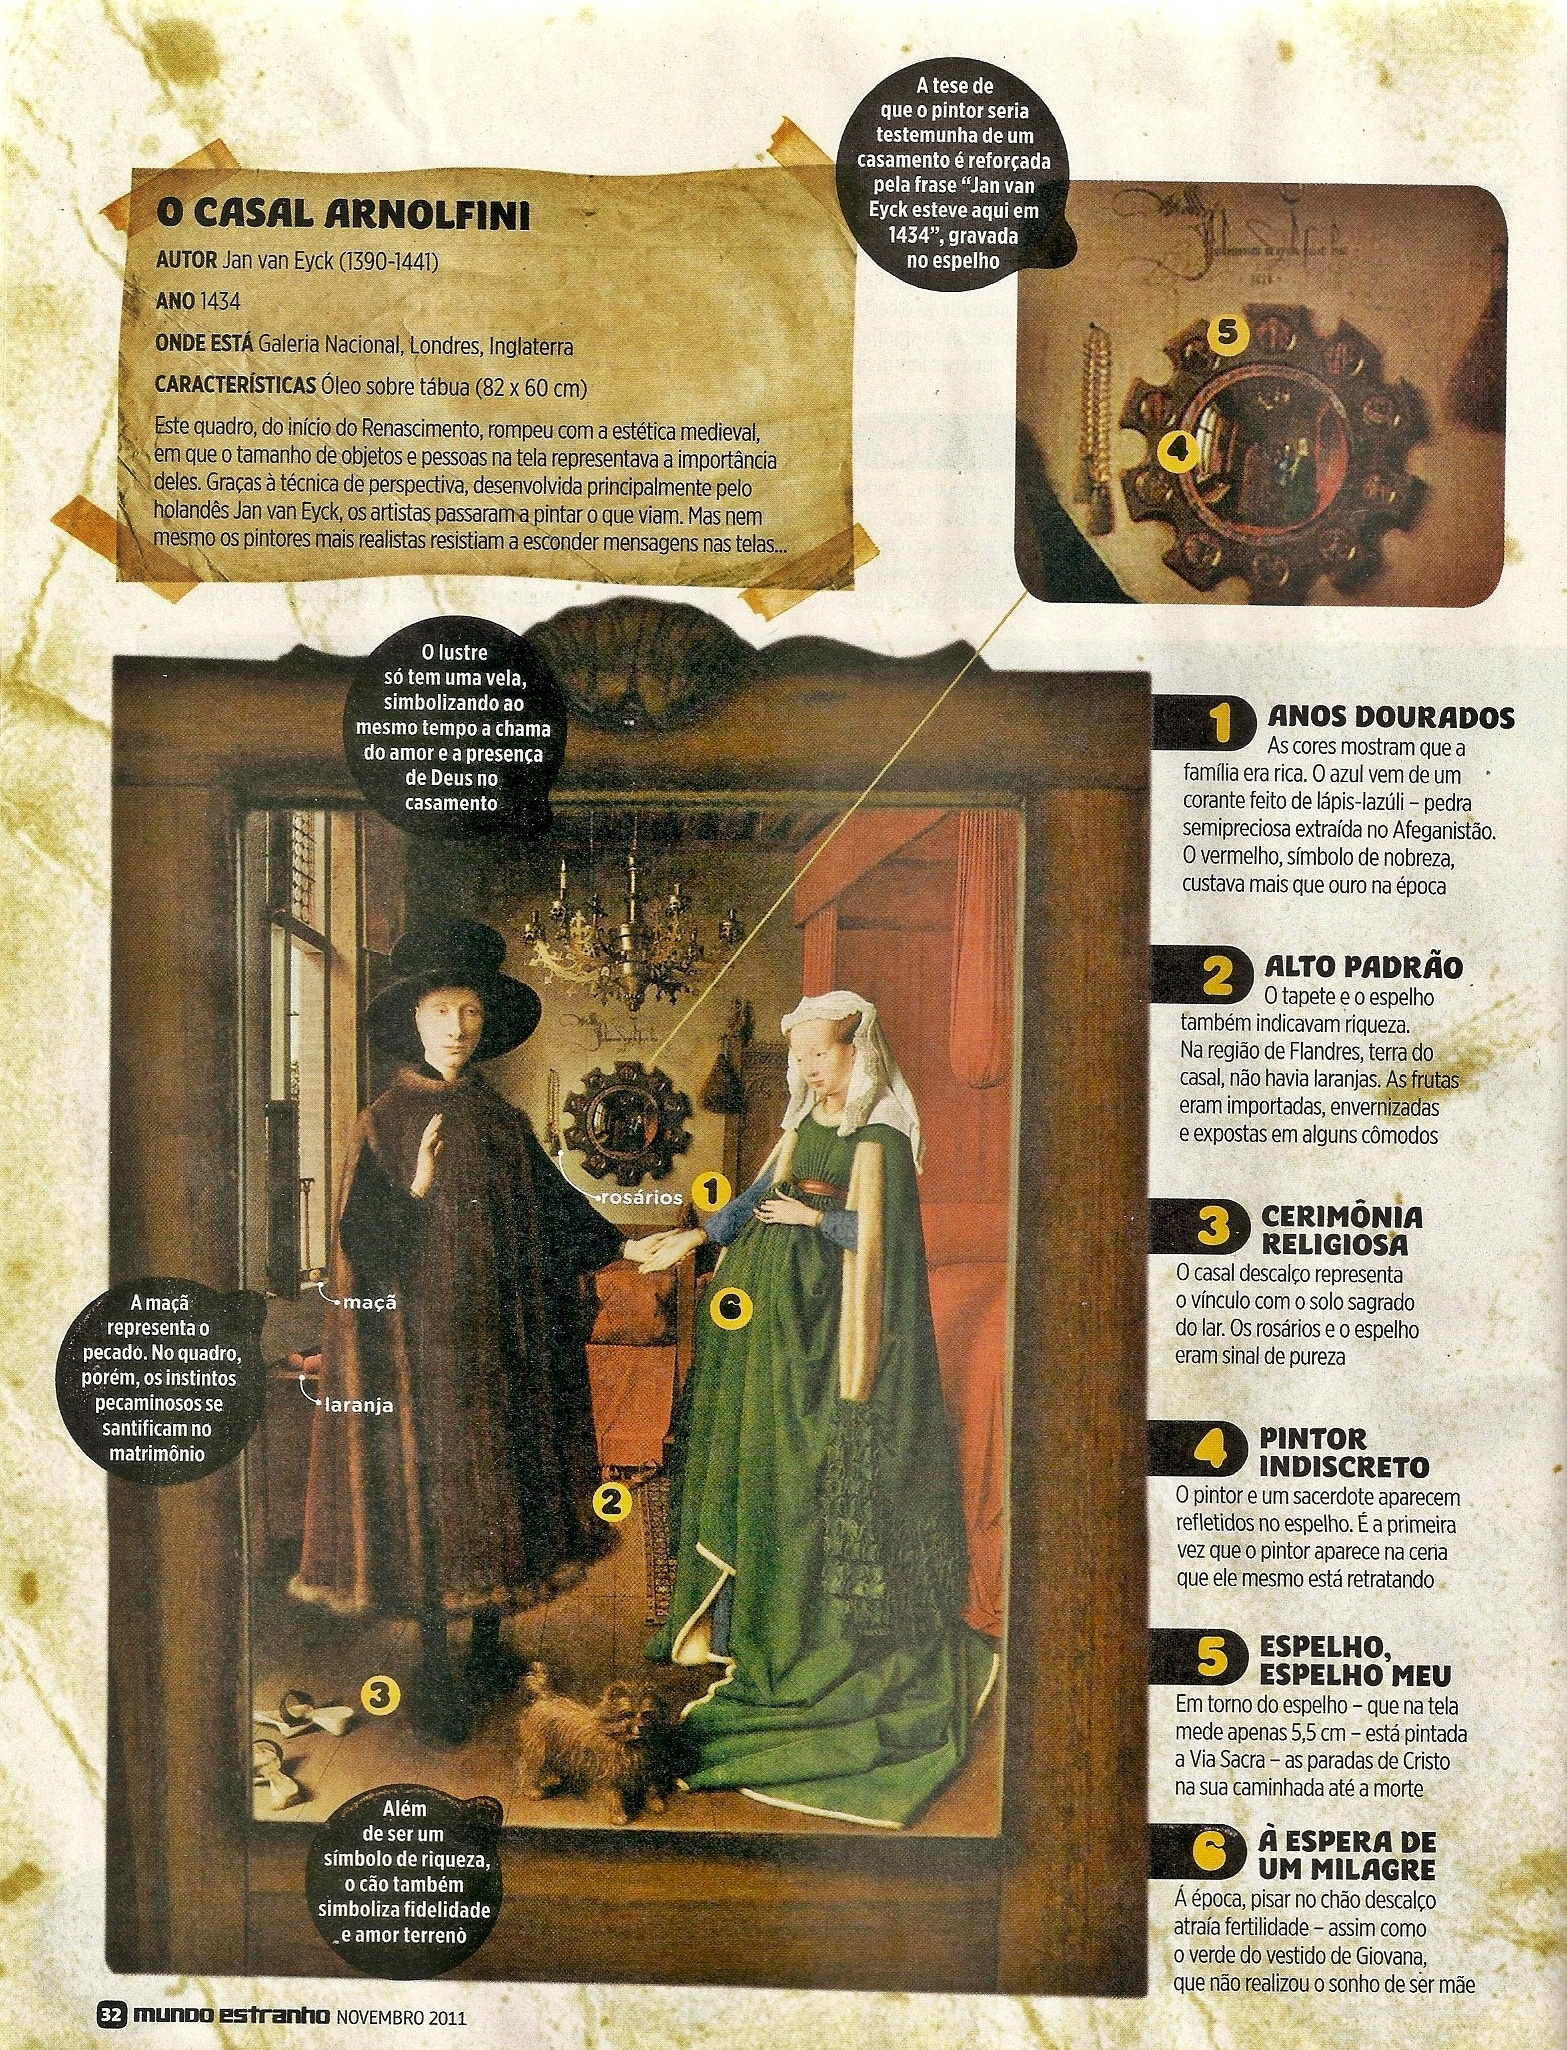 mat ria da revista mundo estranho cita o casal arnolfini boullan tudo sobre ana bolena e a. Black Bedroom Furniture Sets. Home Design Ideas